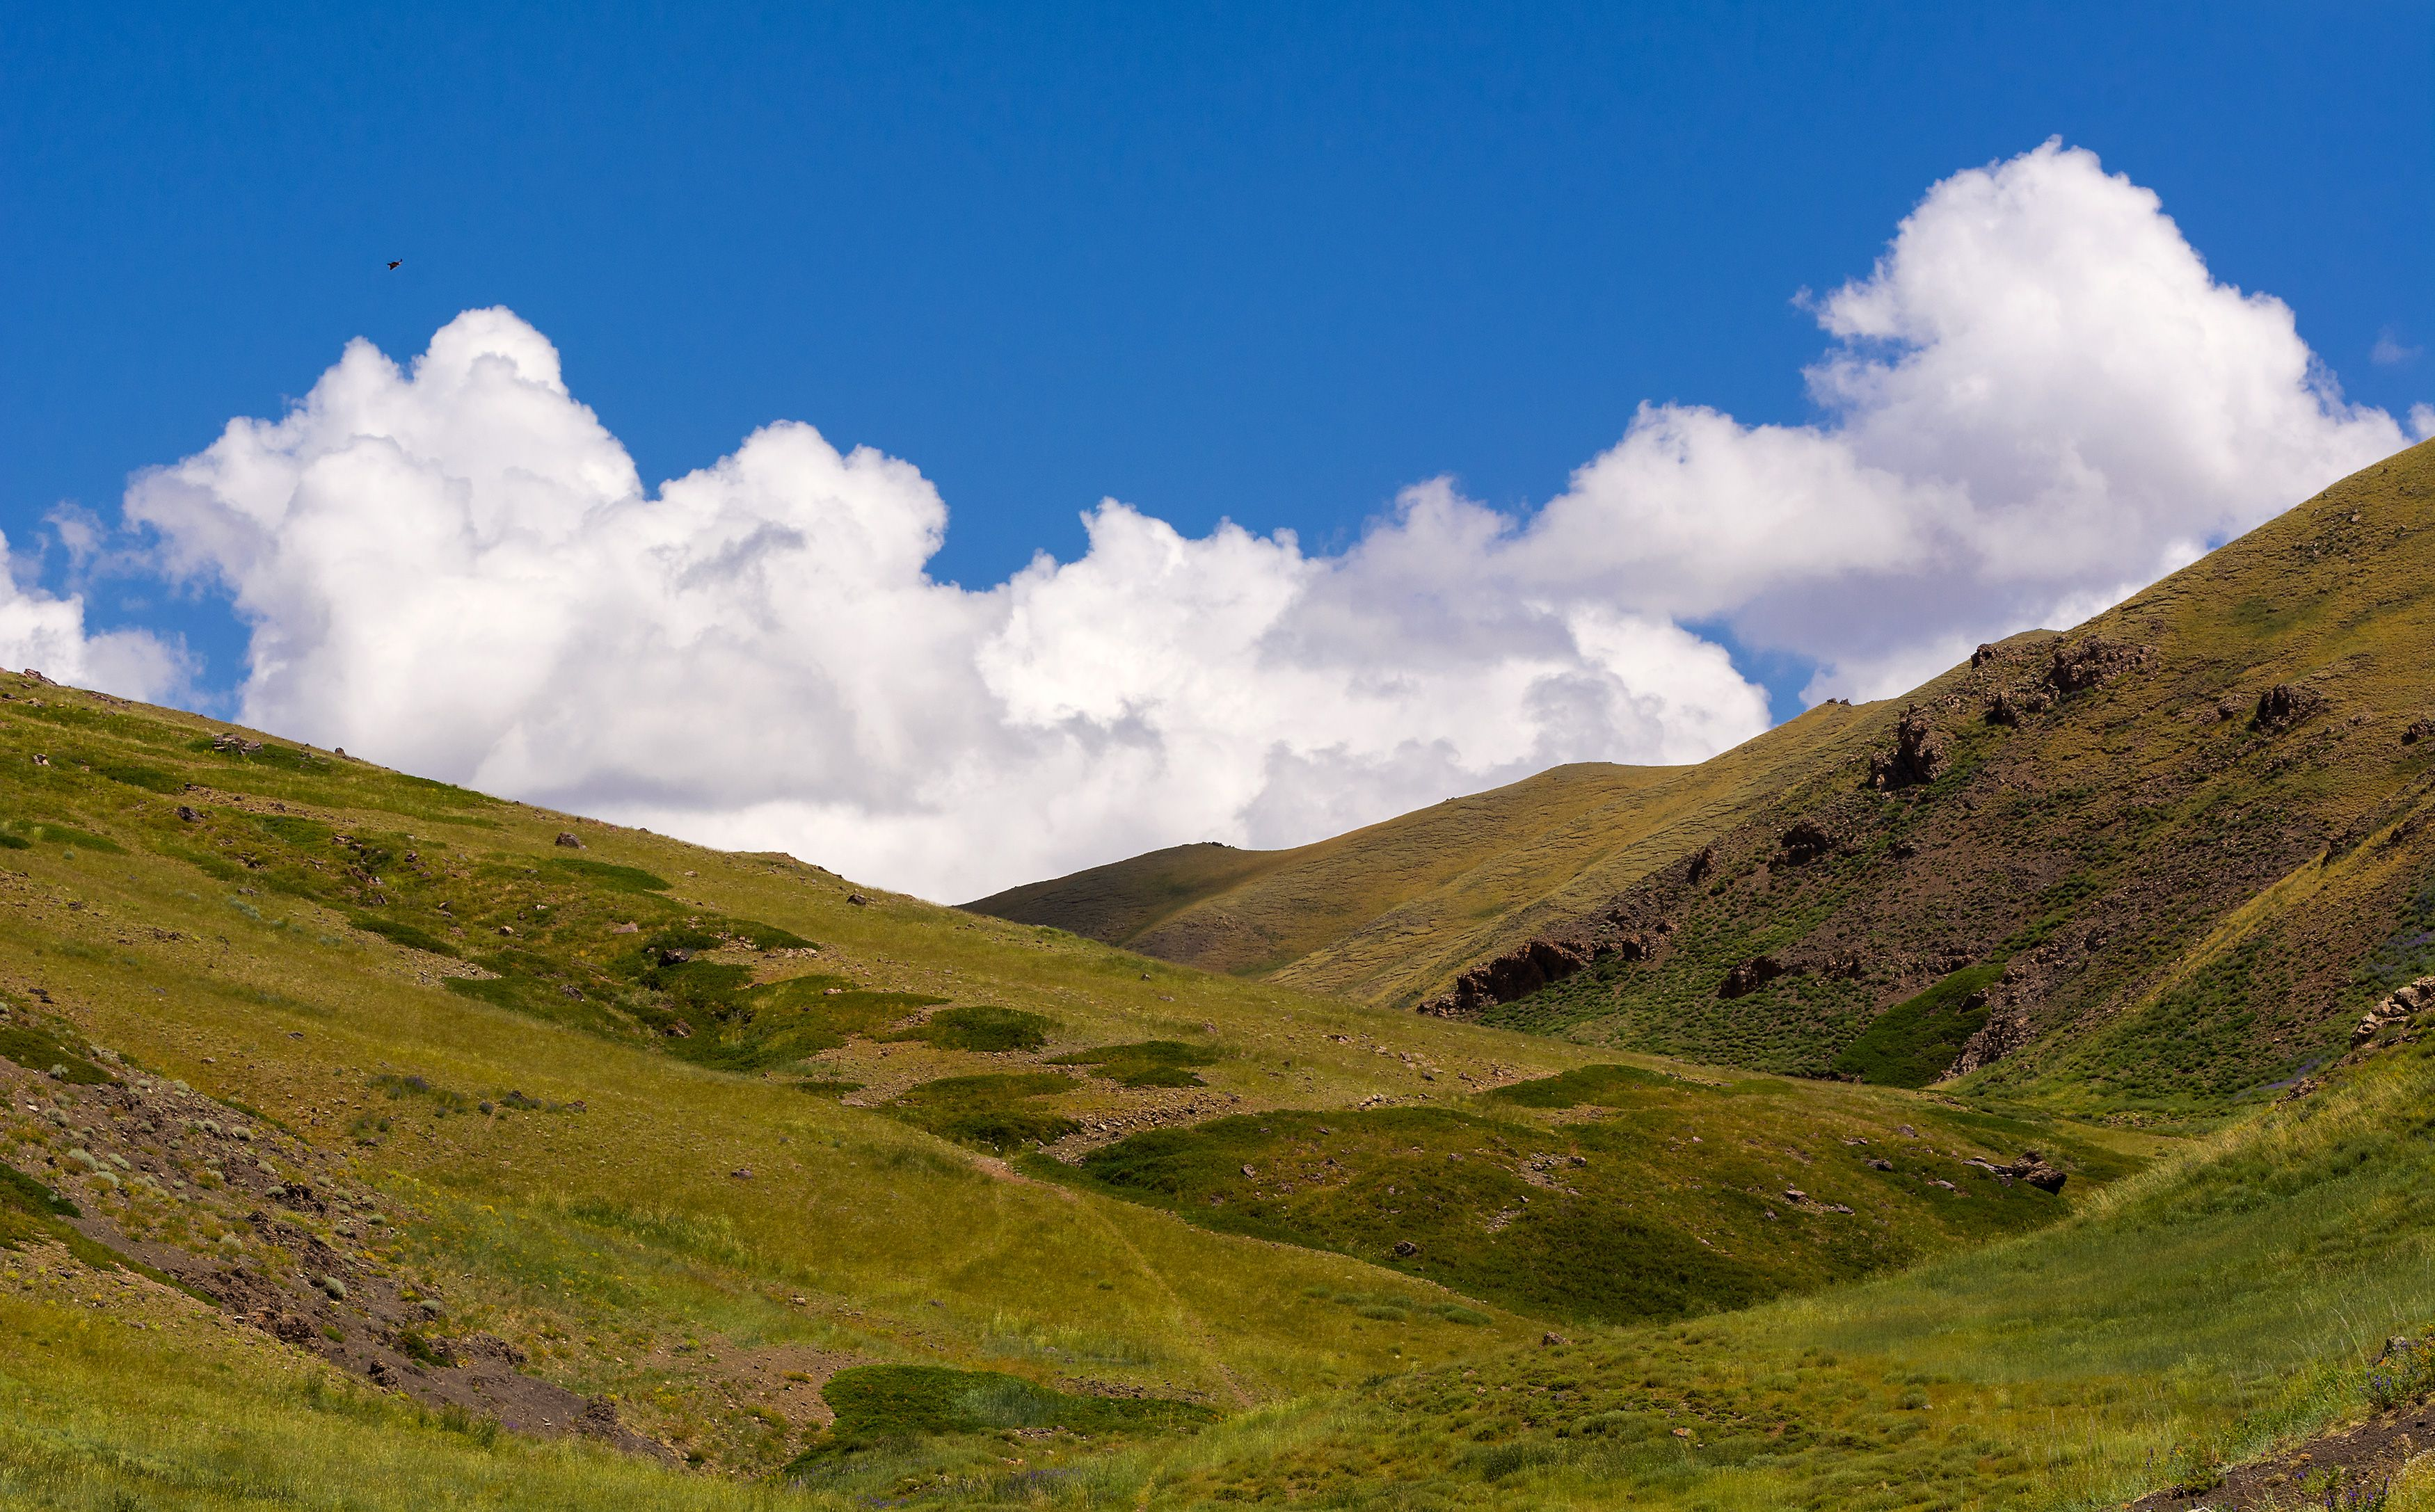 The Landscape Of The Green Hills With Cloudscape Landscape Image Free Images